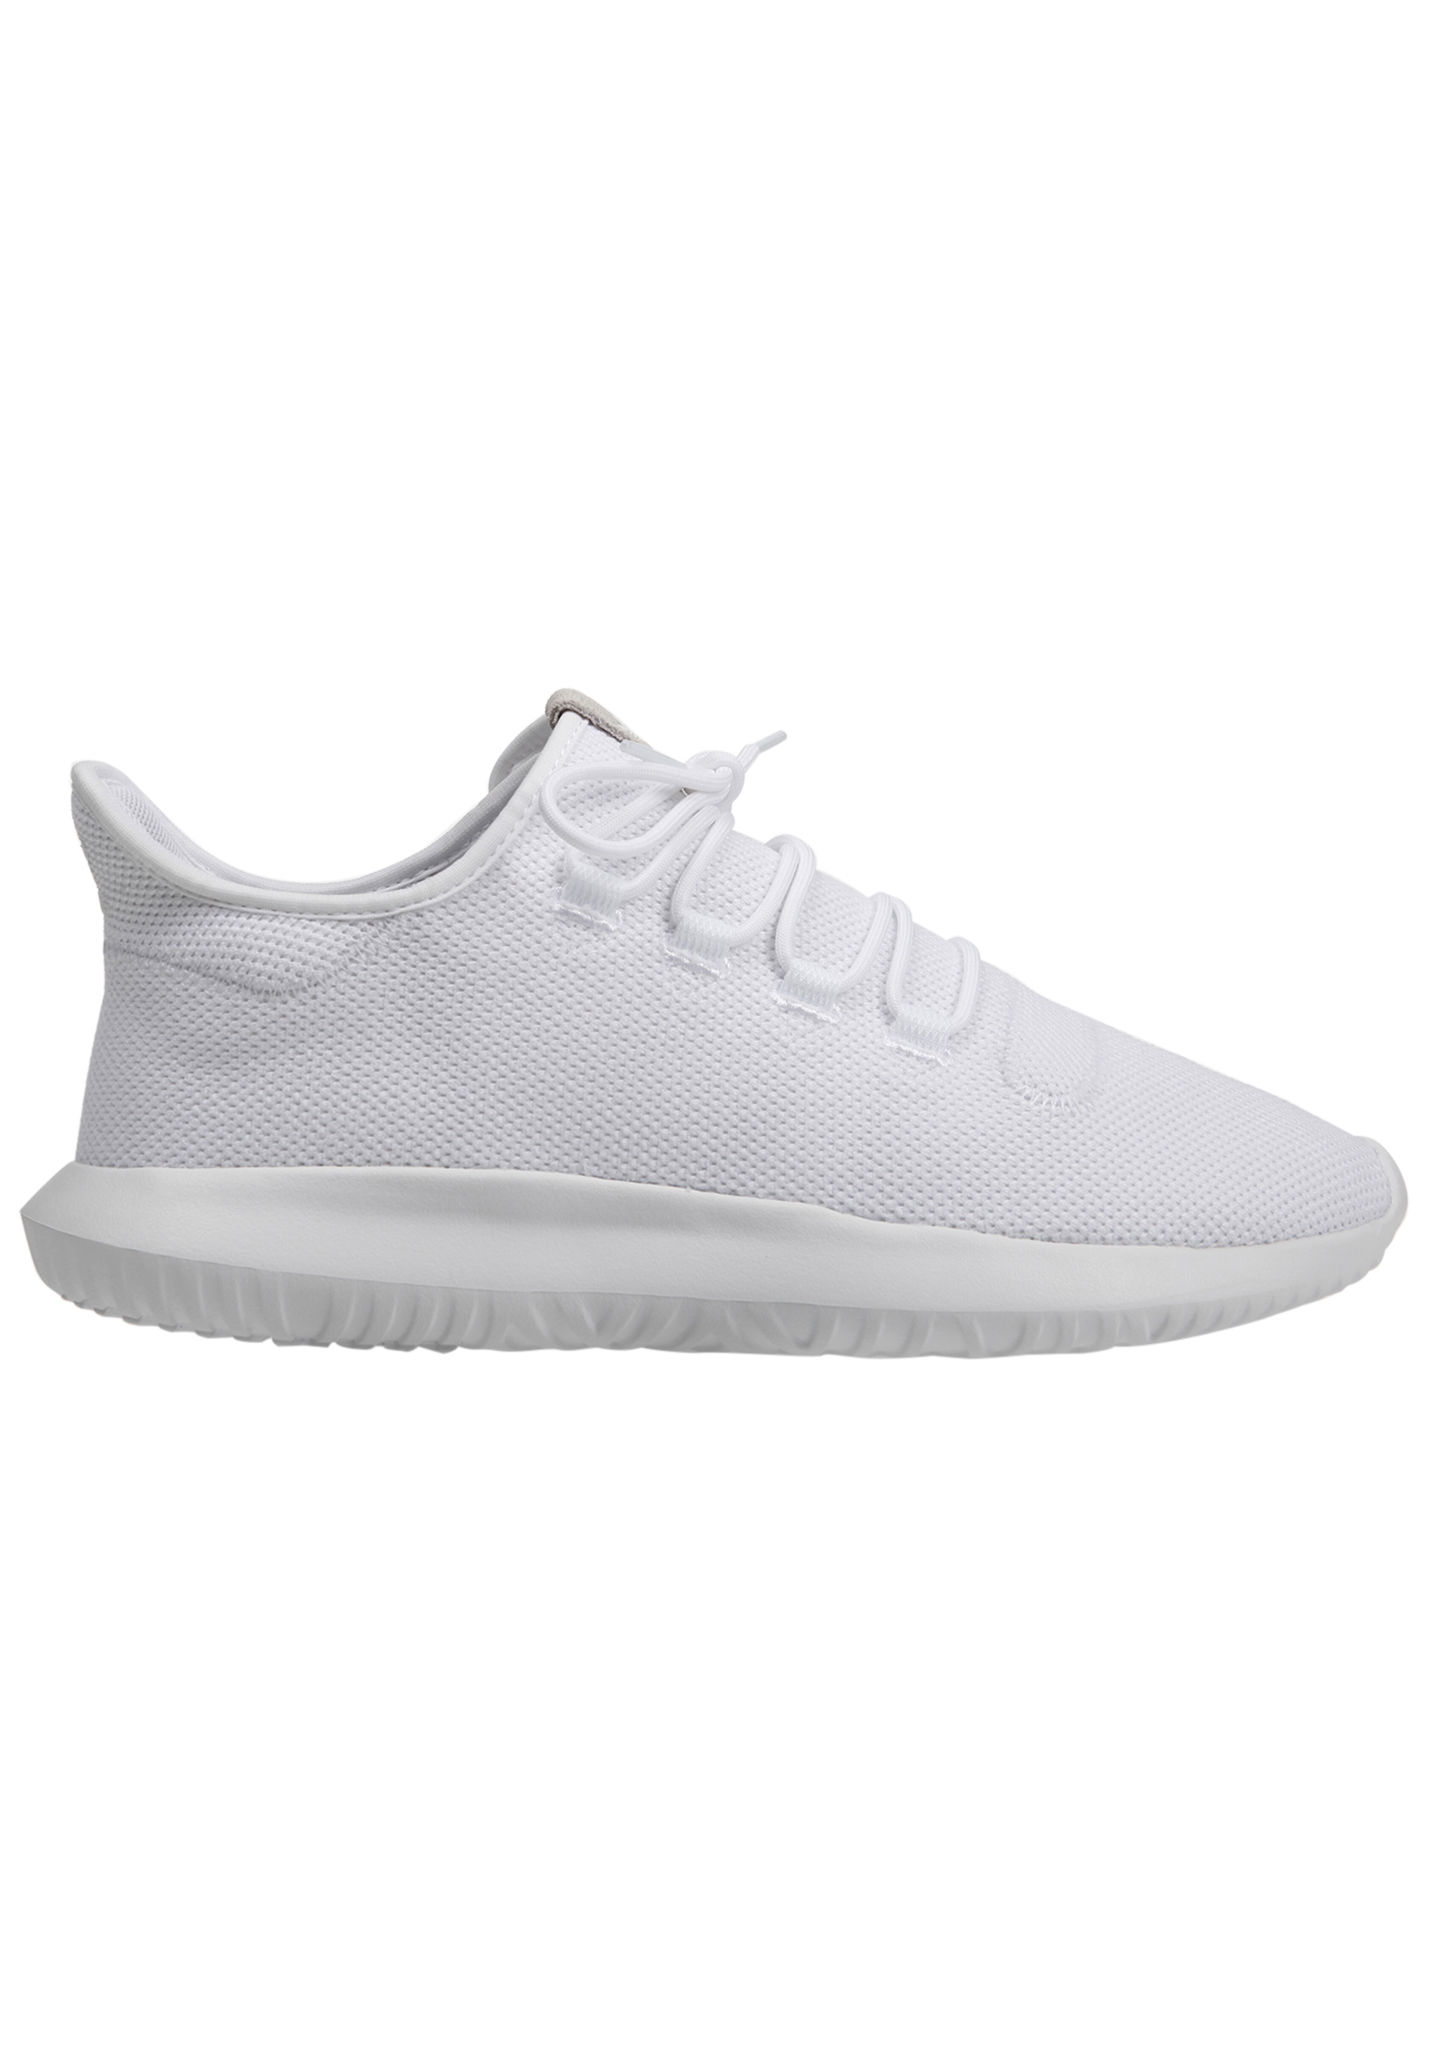 hot sale online bf3d8 72602 ADIDAS ORIGINALS Tubular Shadow - Sneakers for Men - White